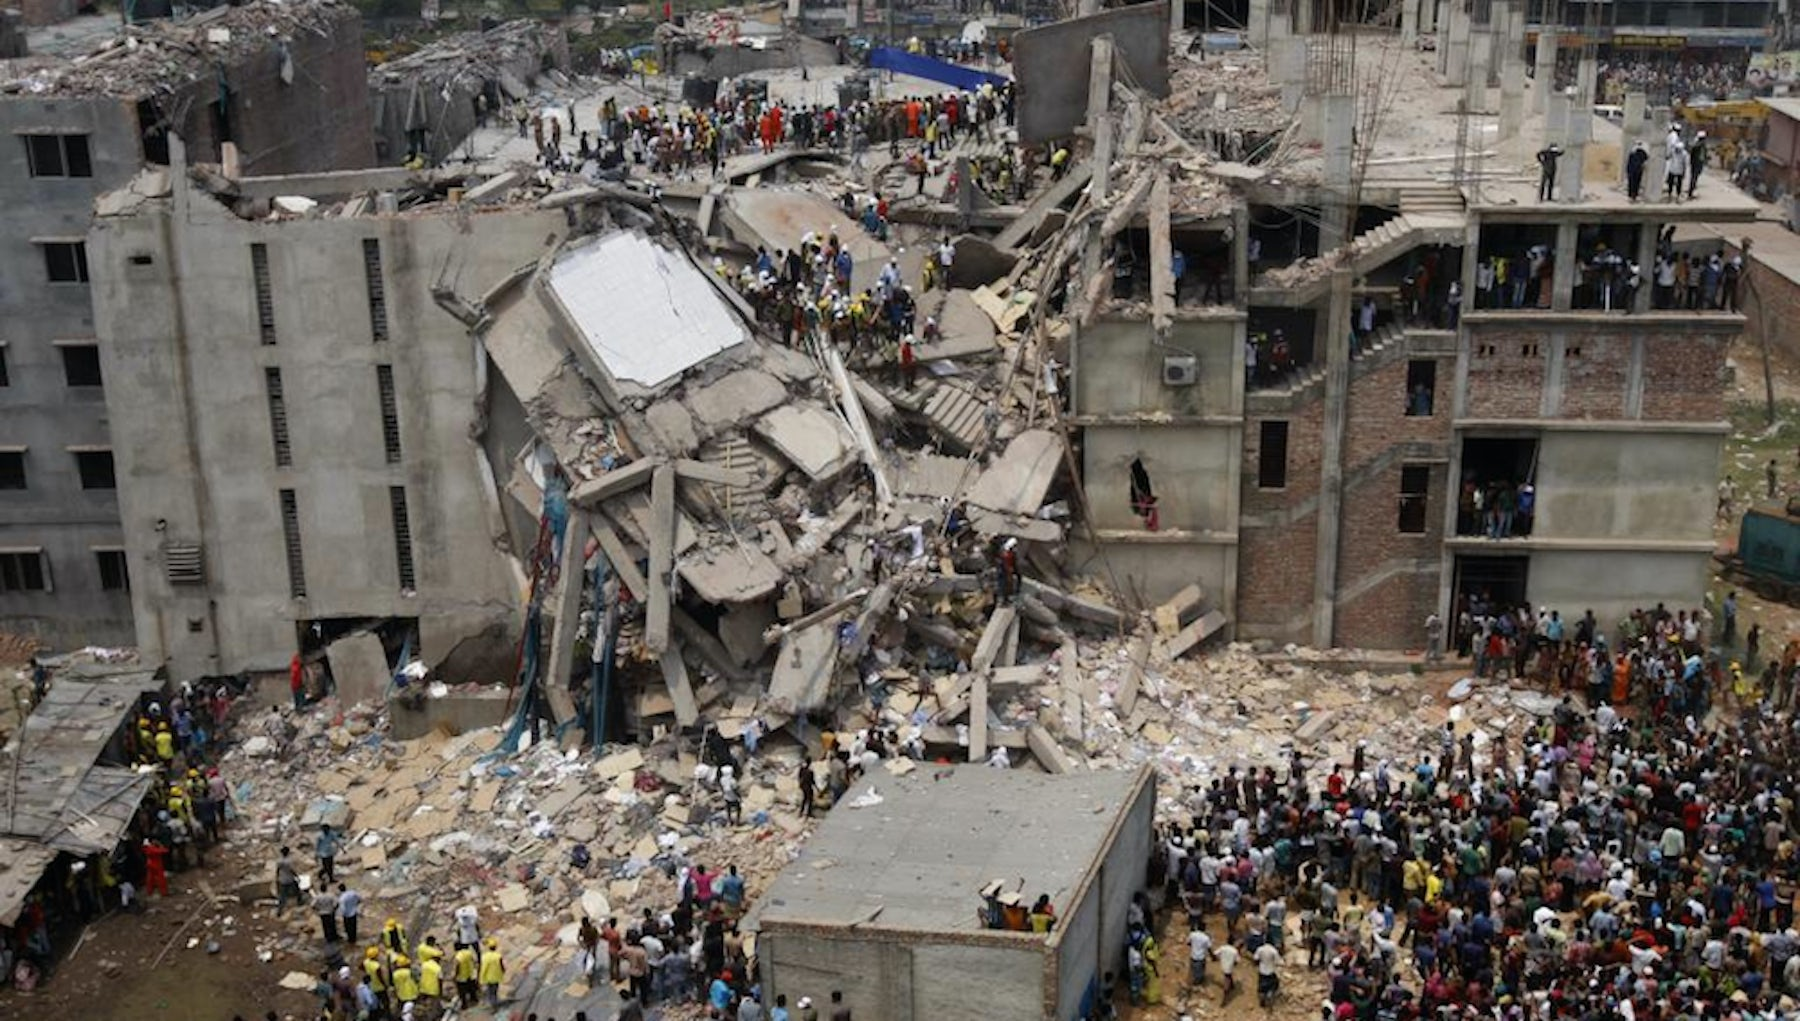 The Rana Plaza factory collapse | Source: Flickr/Rijans